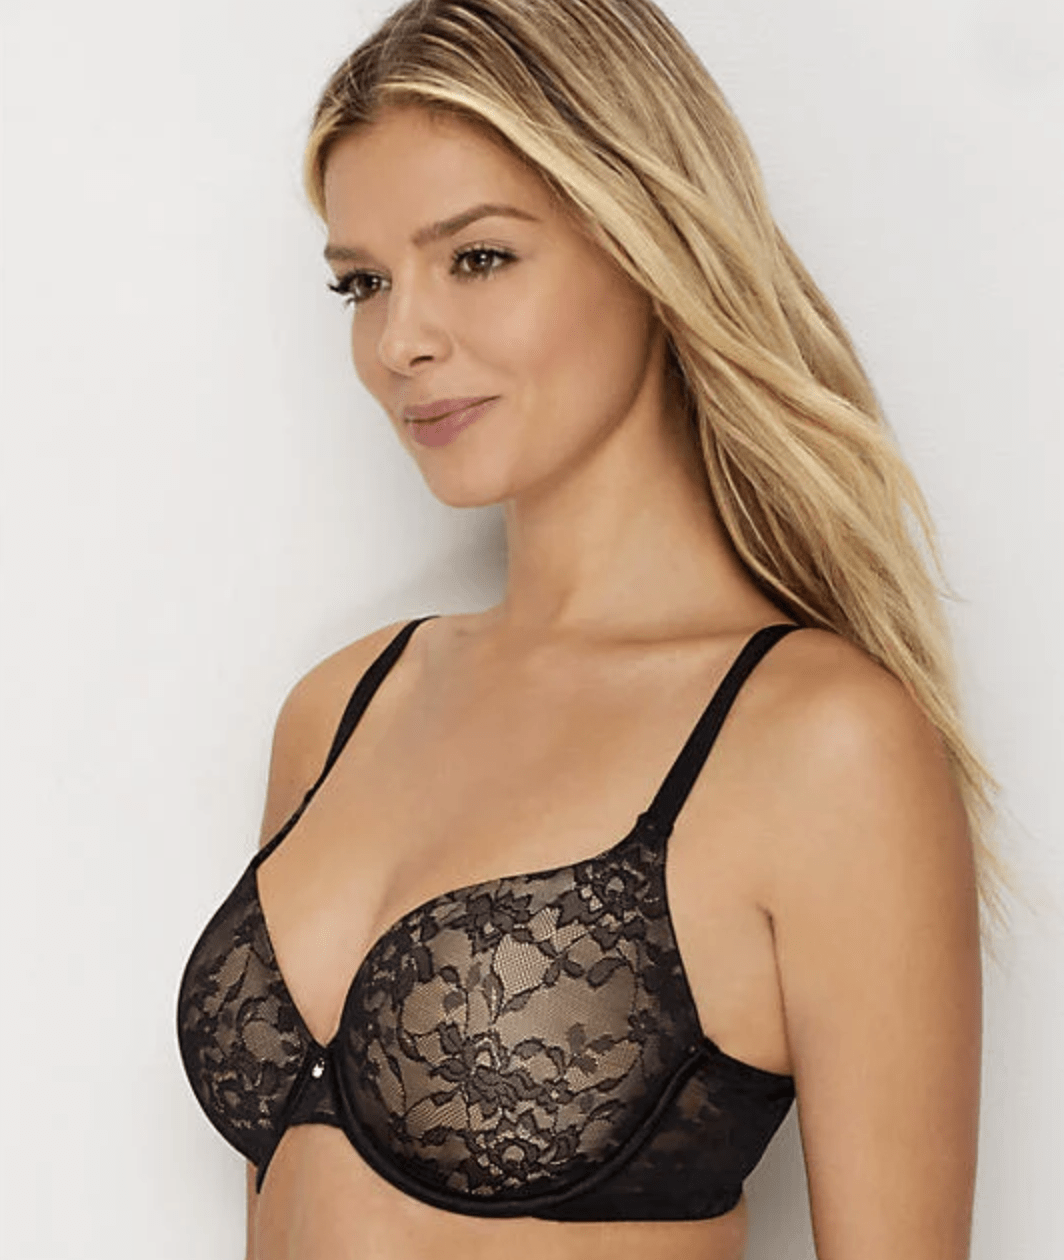 Le Mystere Lace Perfection T-Shirt Bra 8815 Bras Le Mystere